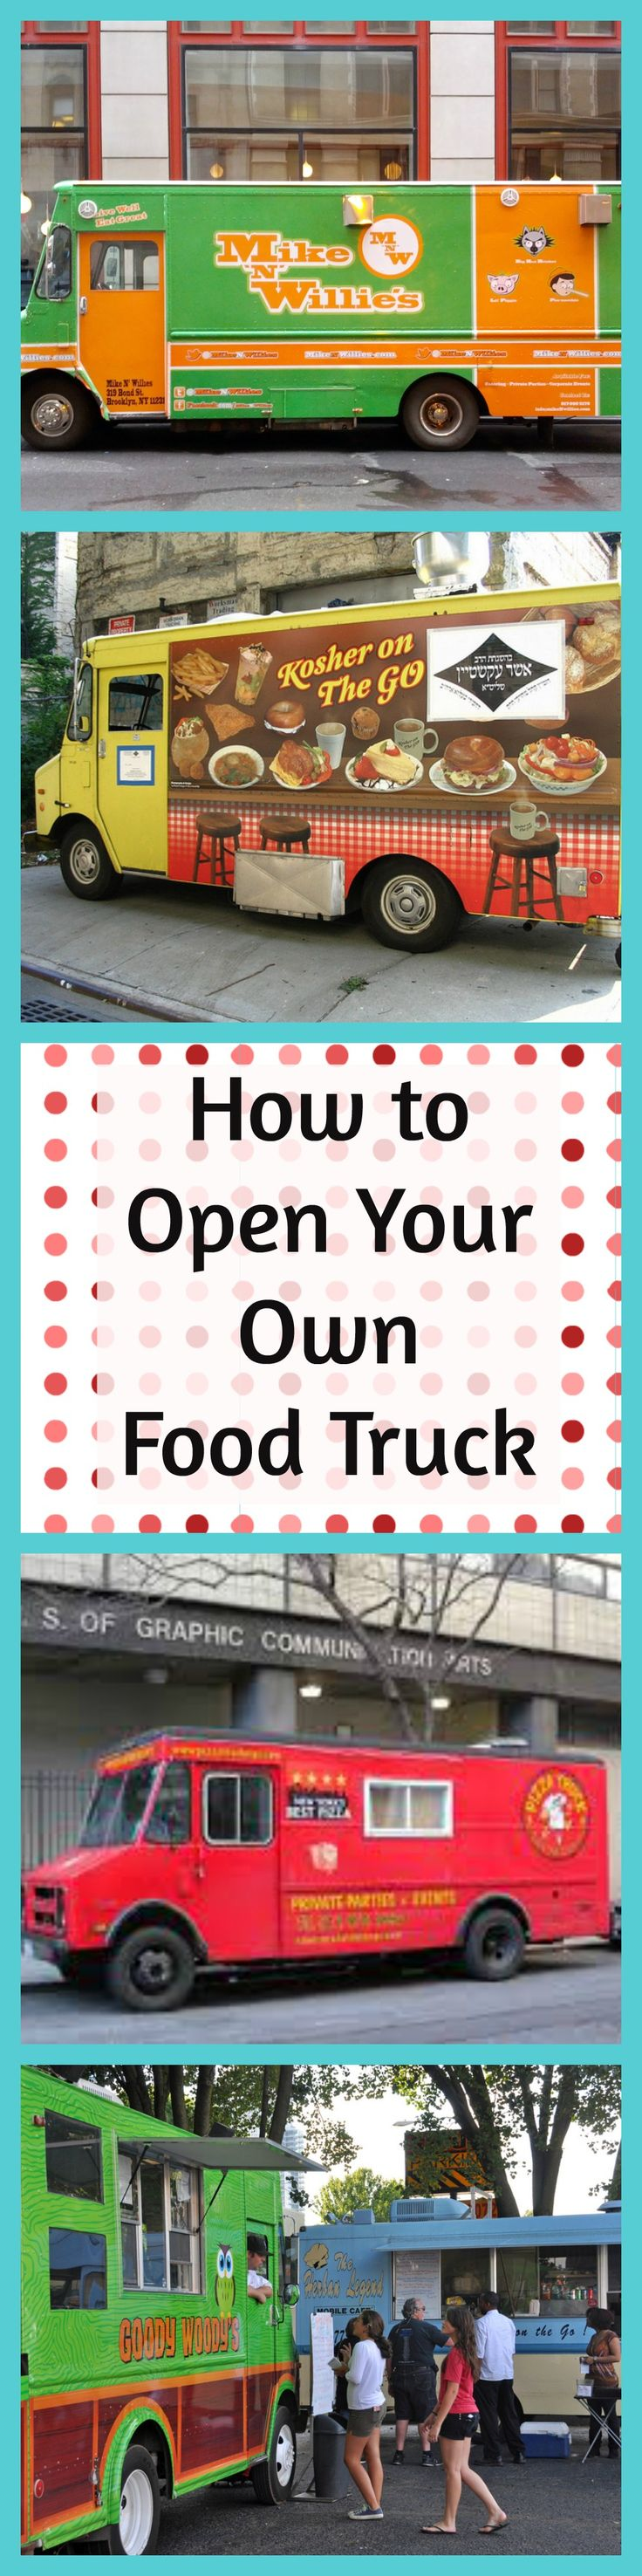 Everything you need to know about opening your own food truck.                                                                                                                                                                                 More